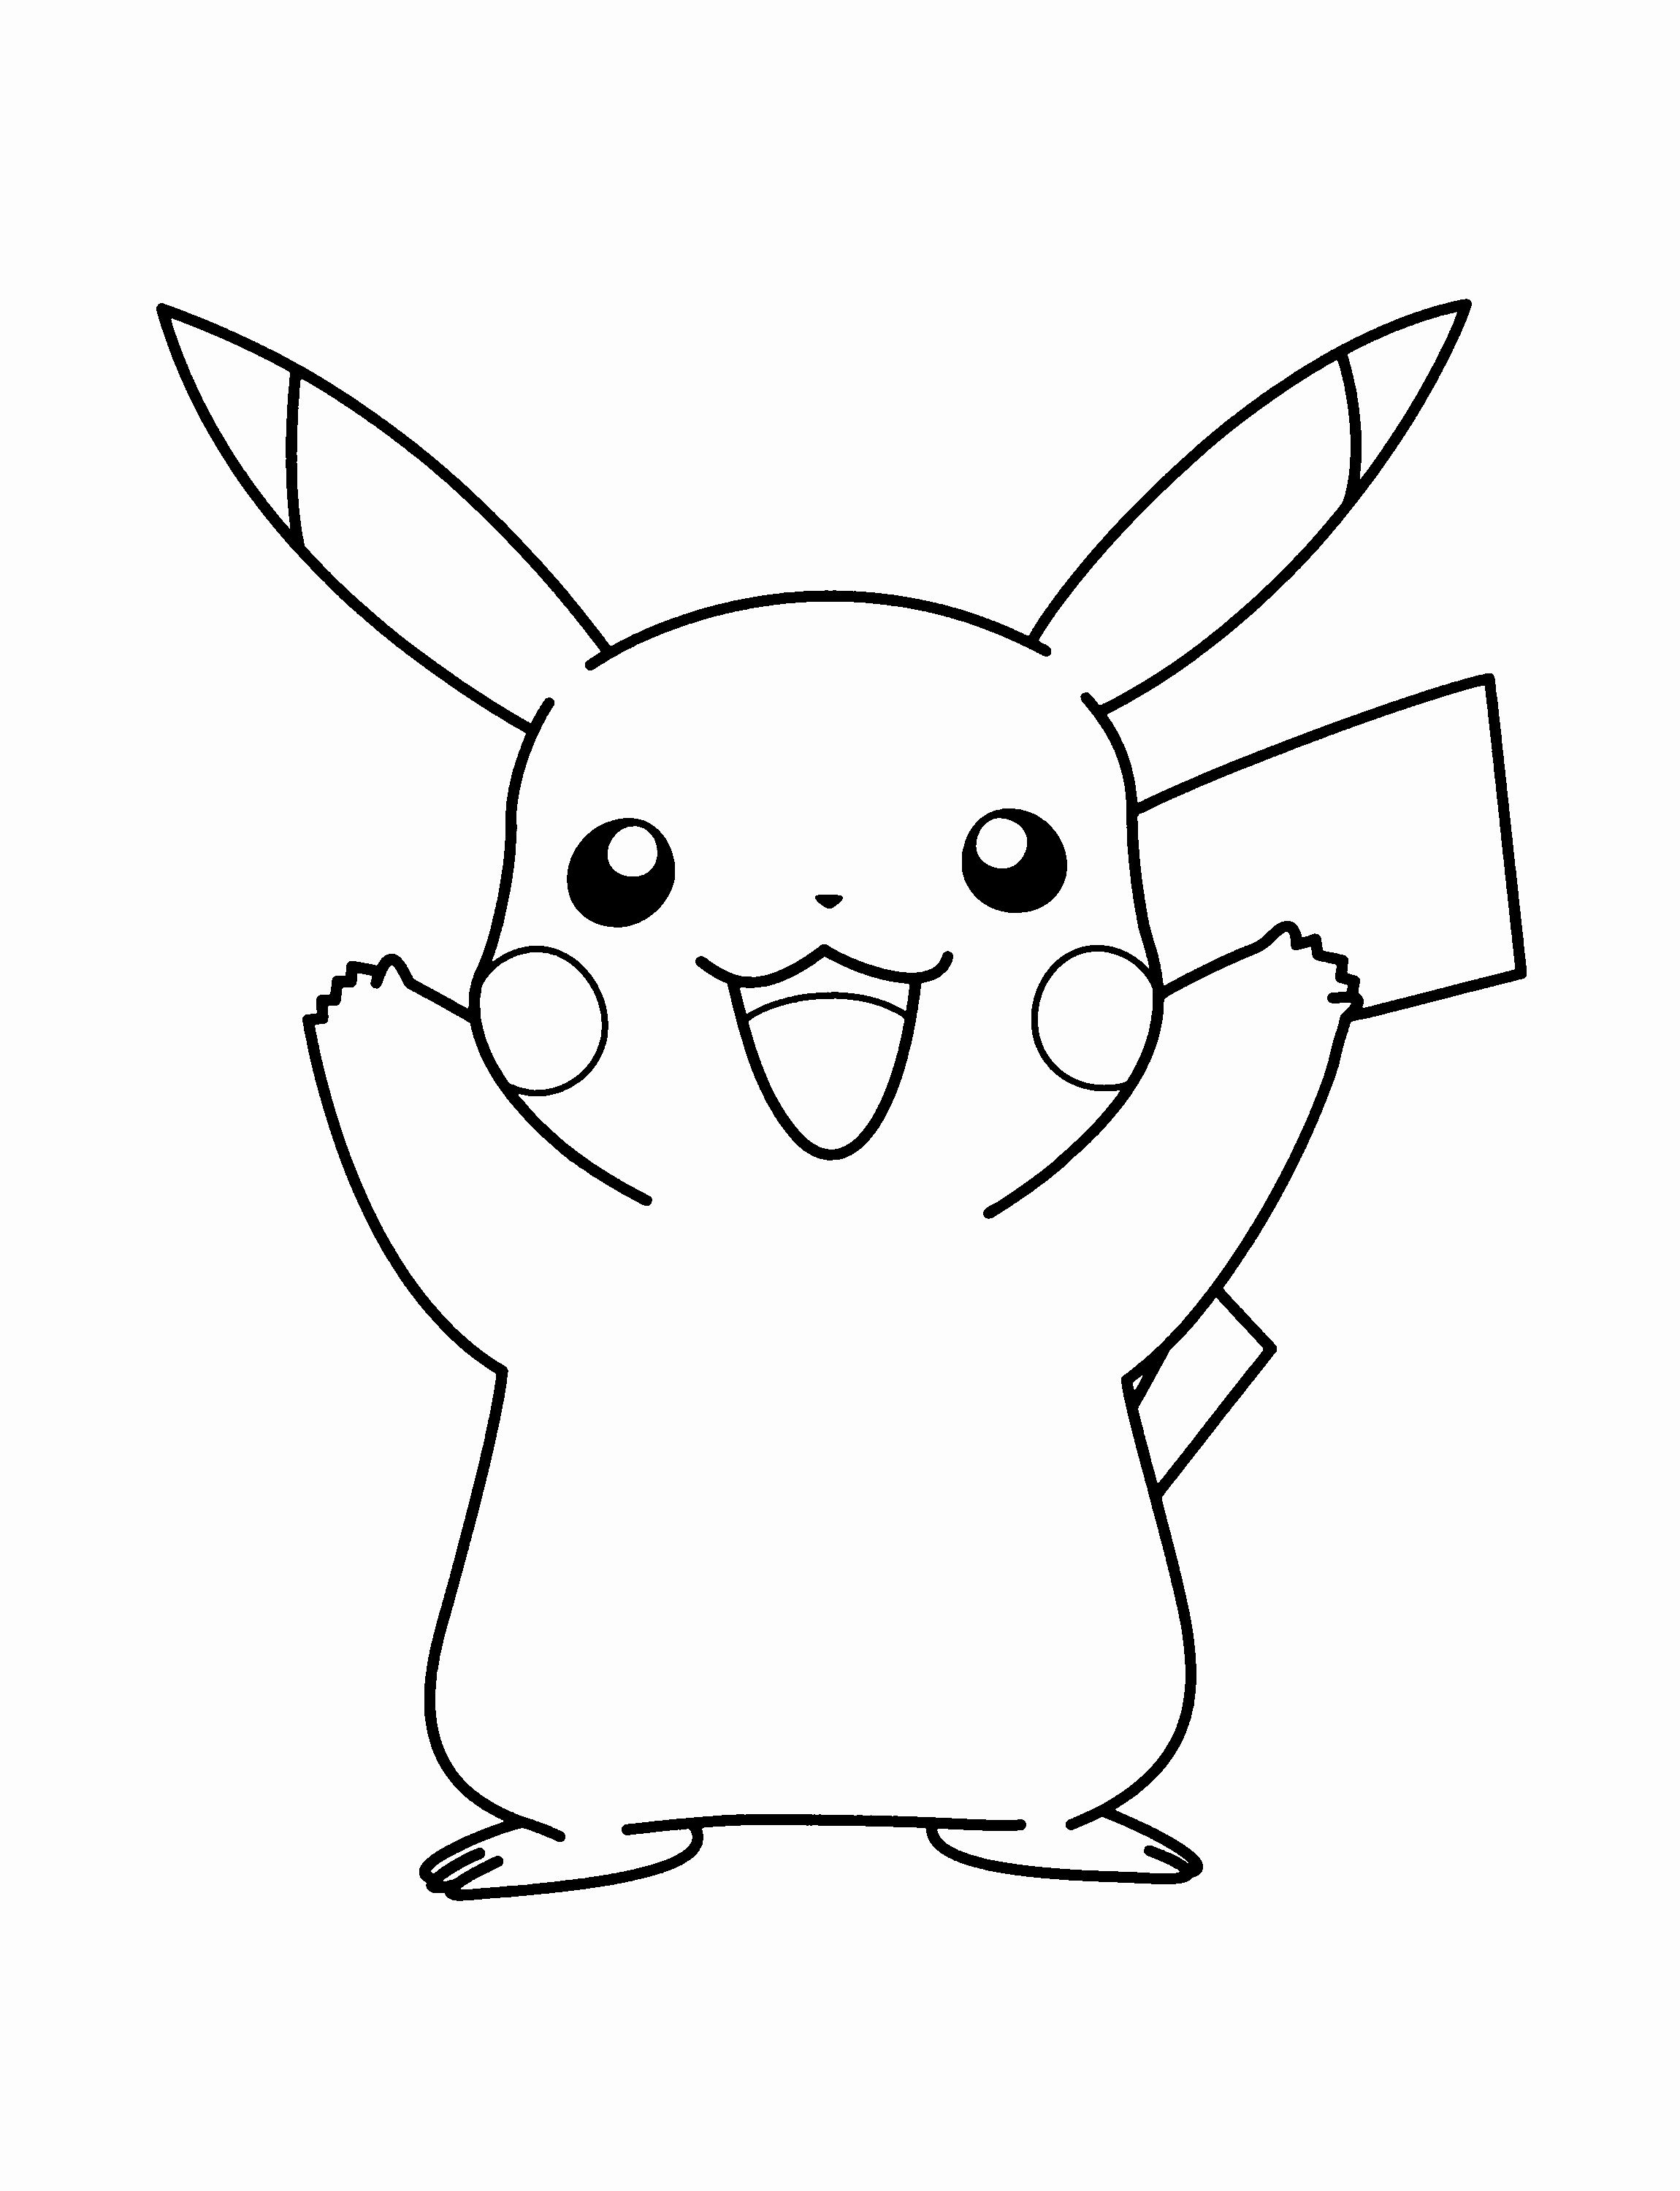 28 Detective Pikachu Coloring Page In 2020 Pikachu Coloring Page